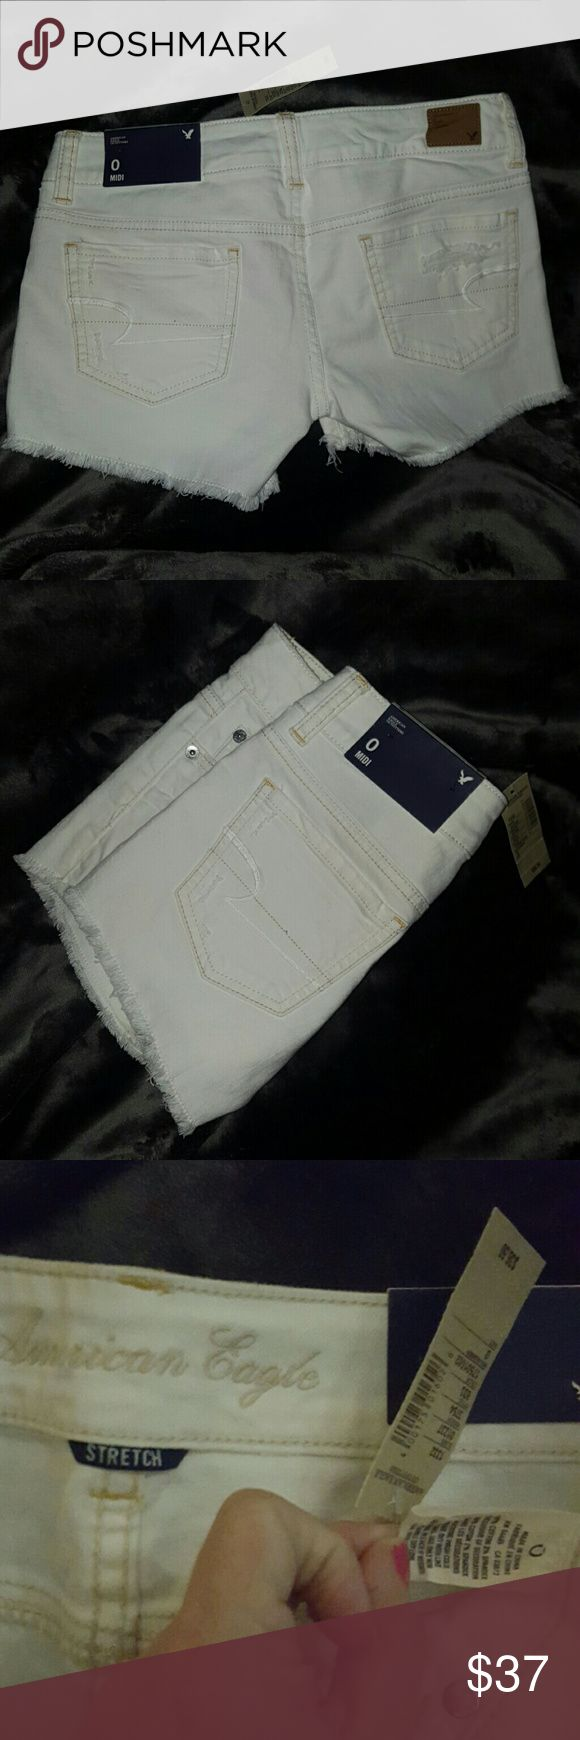 NEW MIDI DISTRESSED Jean Shorts American Eagle Size 0 ~ 98% cotton 2% spandex ~ New with Tags White frayed and distressed as purchased MIDI Jean shorts from American Eagle. Perfect for the upcoming season! I ship daily American Eagle Outfitters Shorts Jean Shorts